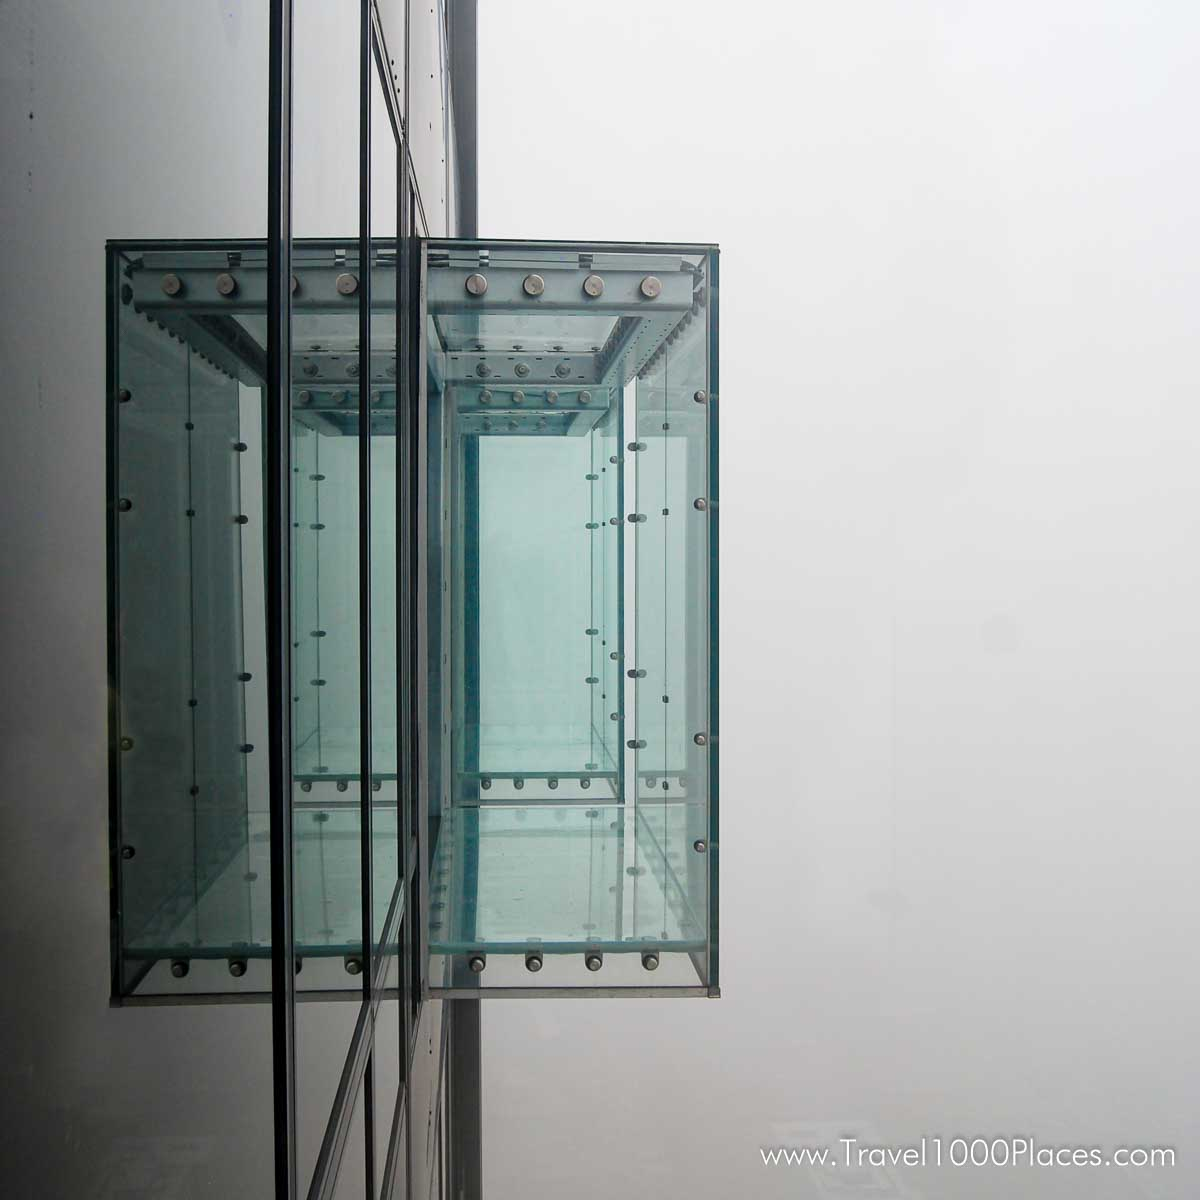 One of the glass balconies on Willis Tower / Observation Deck